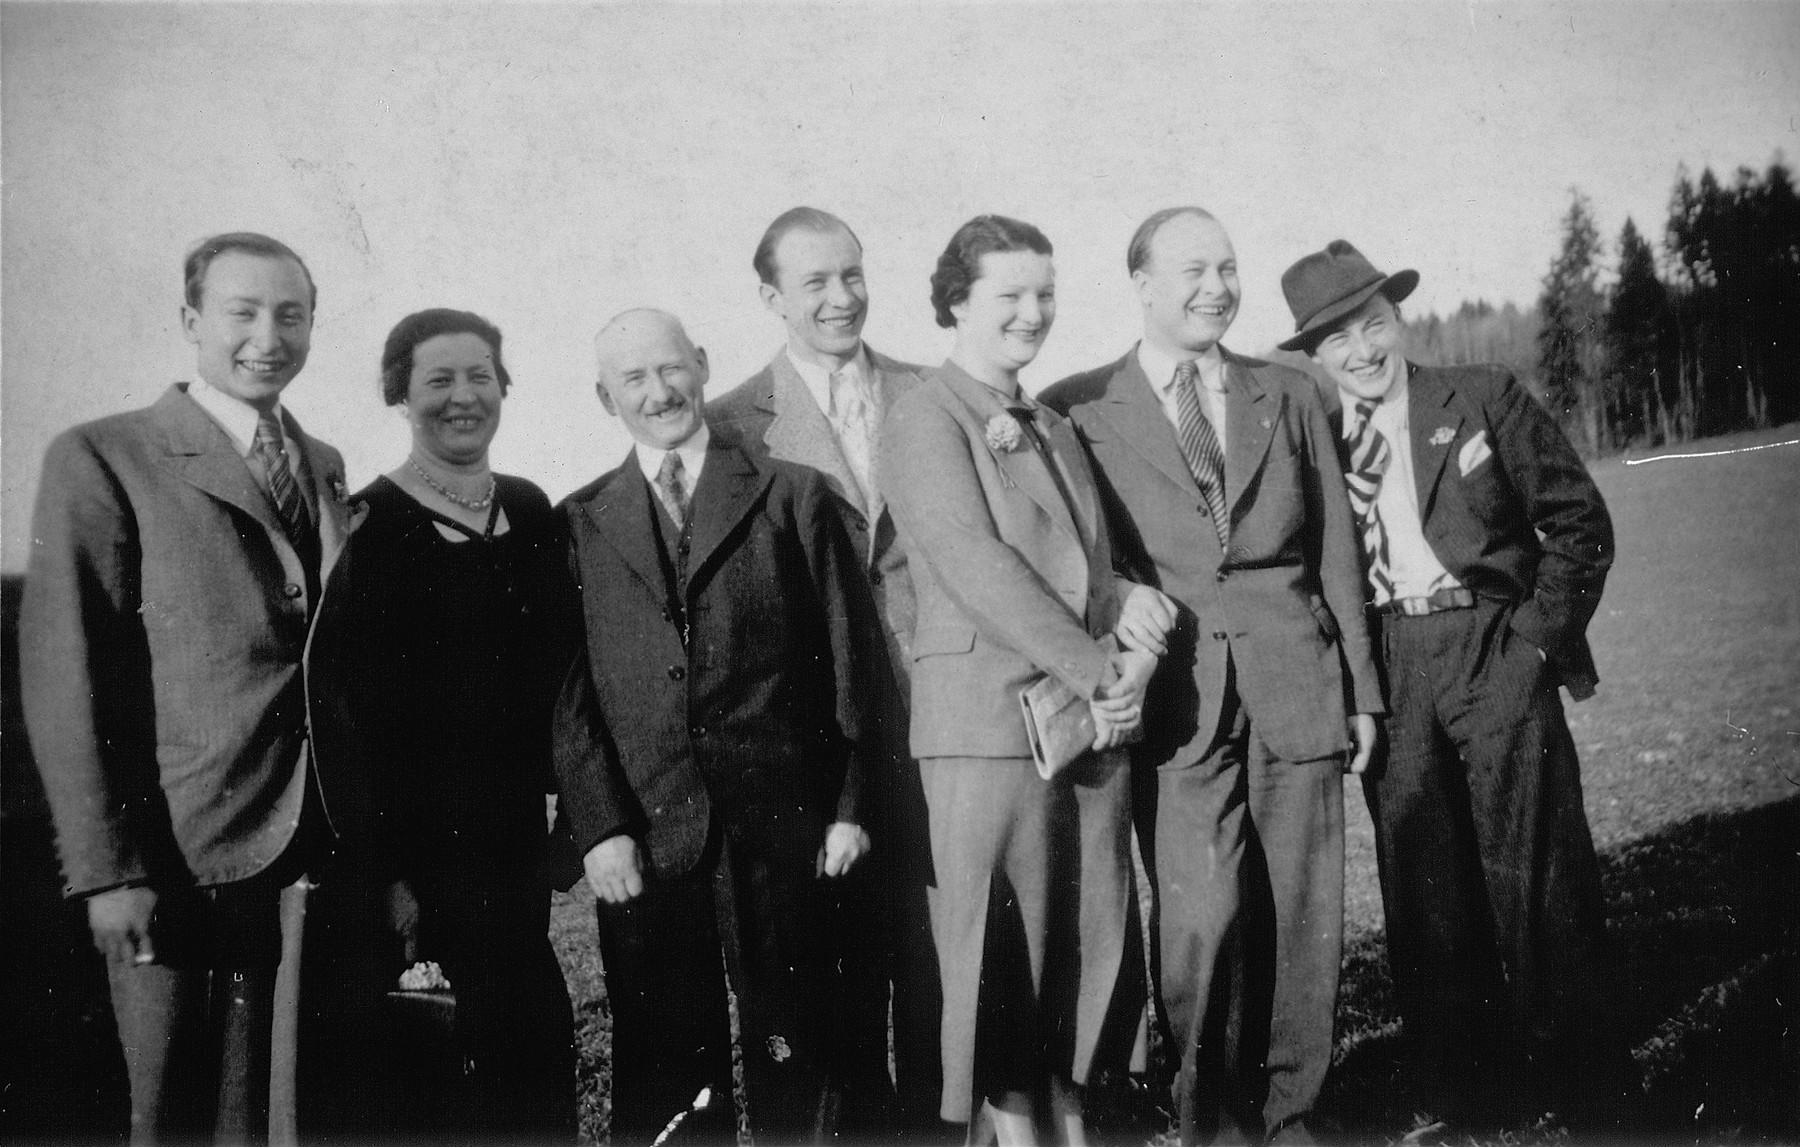 The Blechner family, a Polish-born Jewish family in Germany, poses outside.    Left to right are Salo, Mina, Markus, Oskar, Friedl, Jakob, and Leo Blechner.